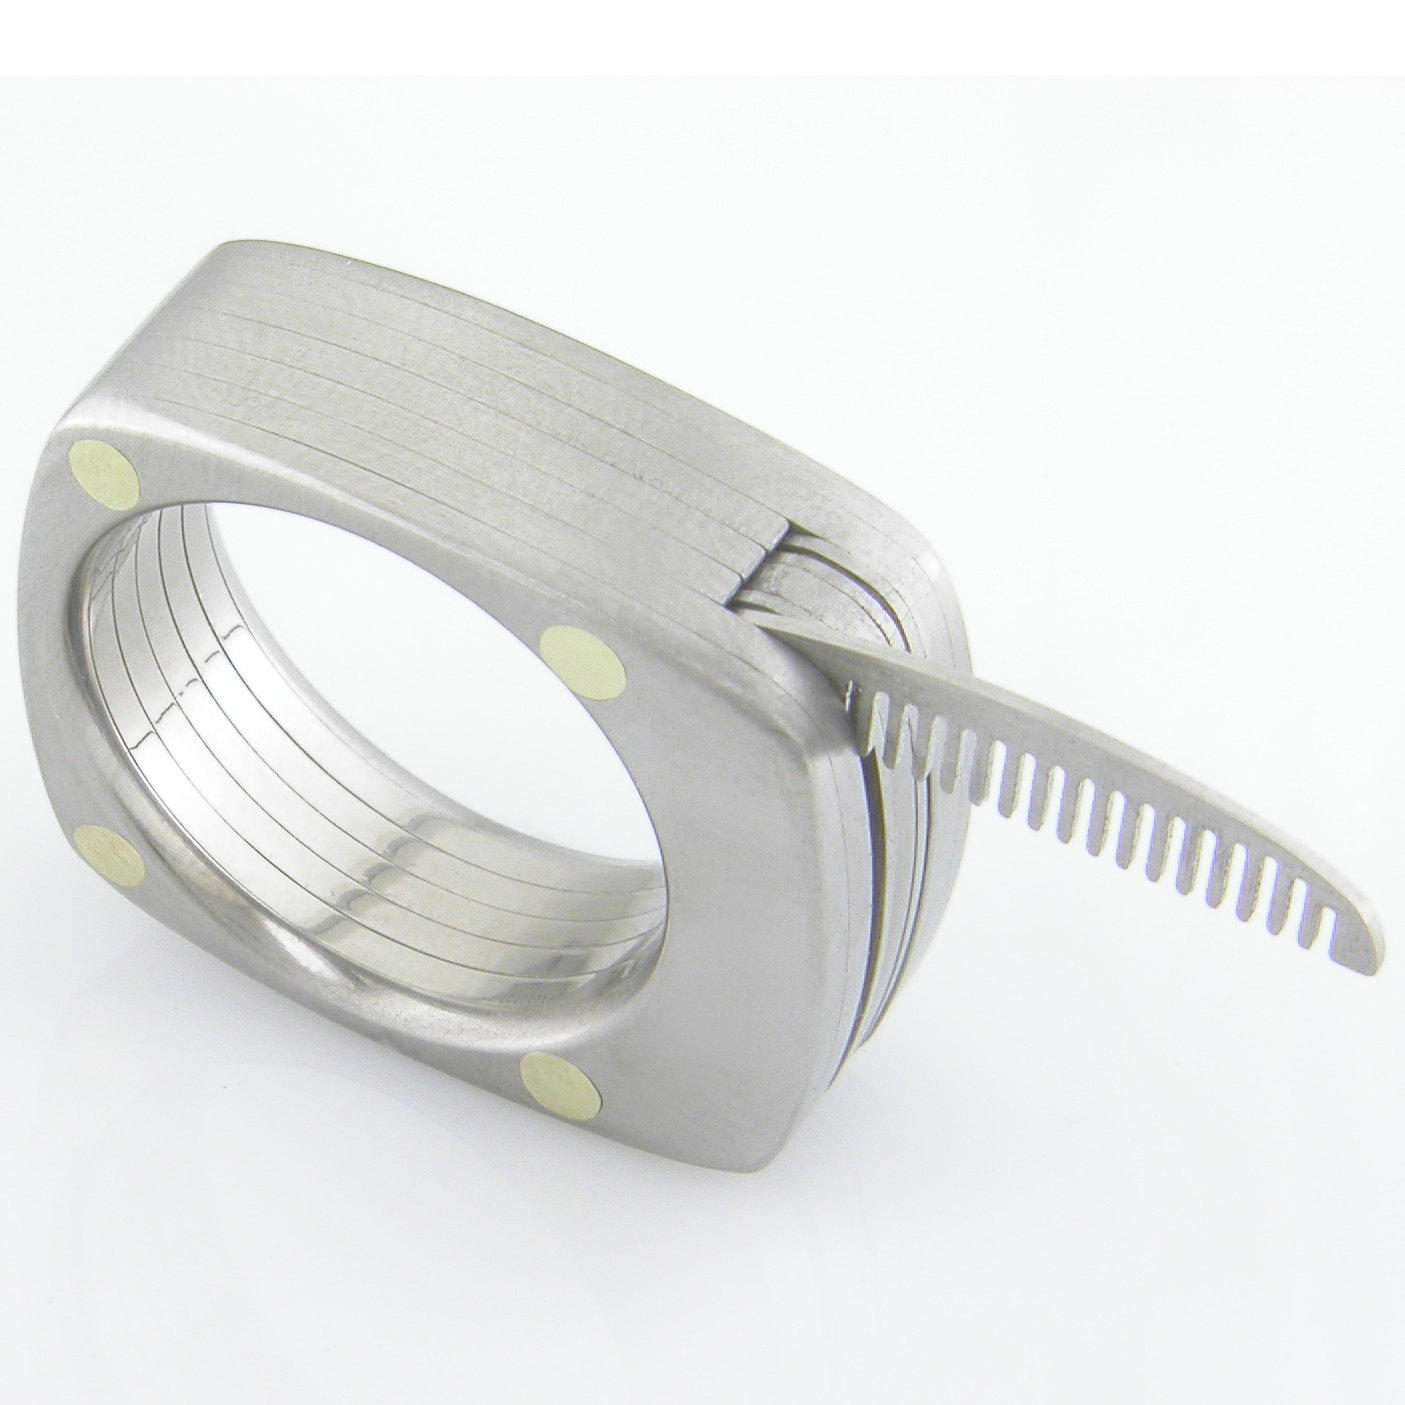 awesome-design-ideas-The-Man-Titanium-Ring-Bruce-Boone-3